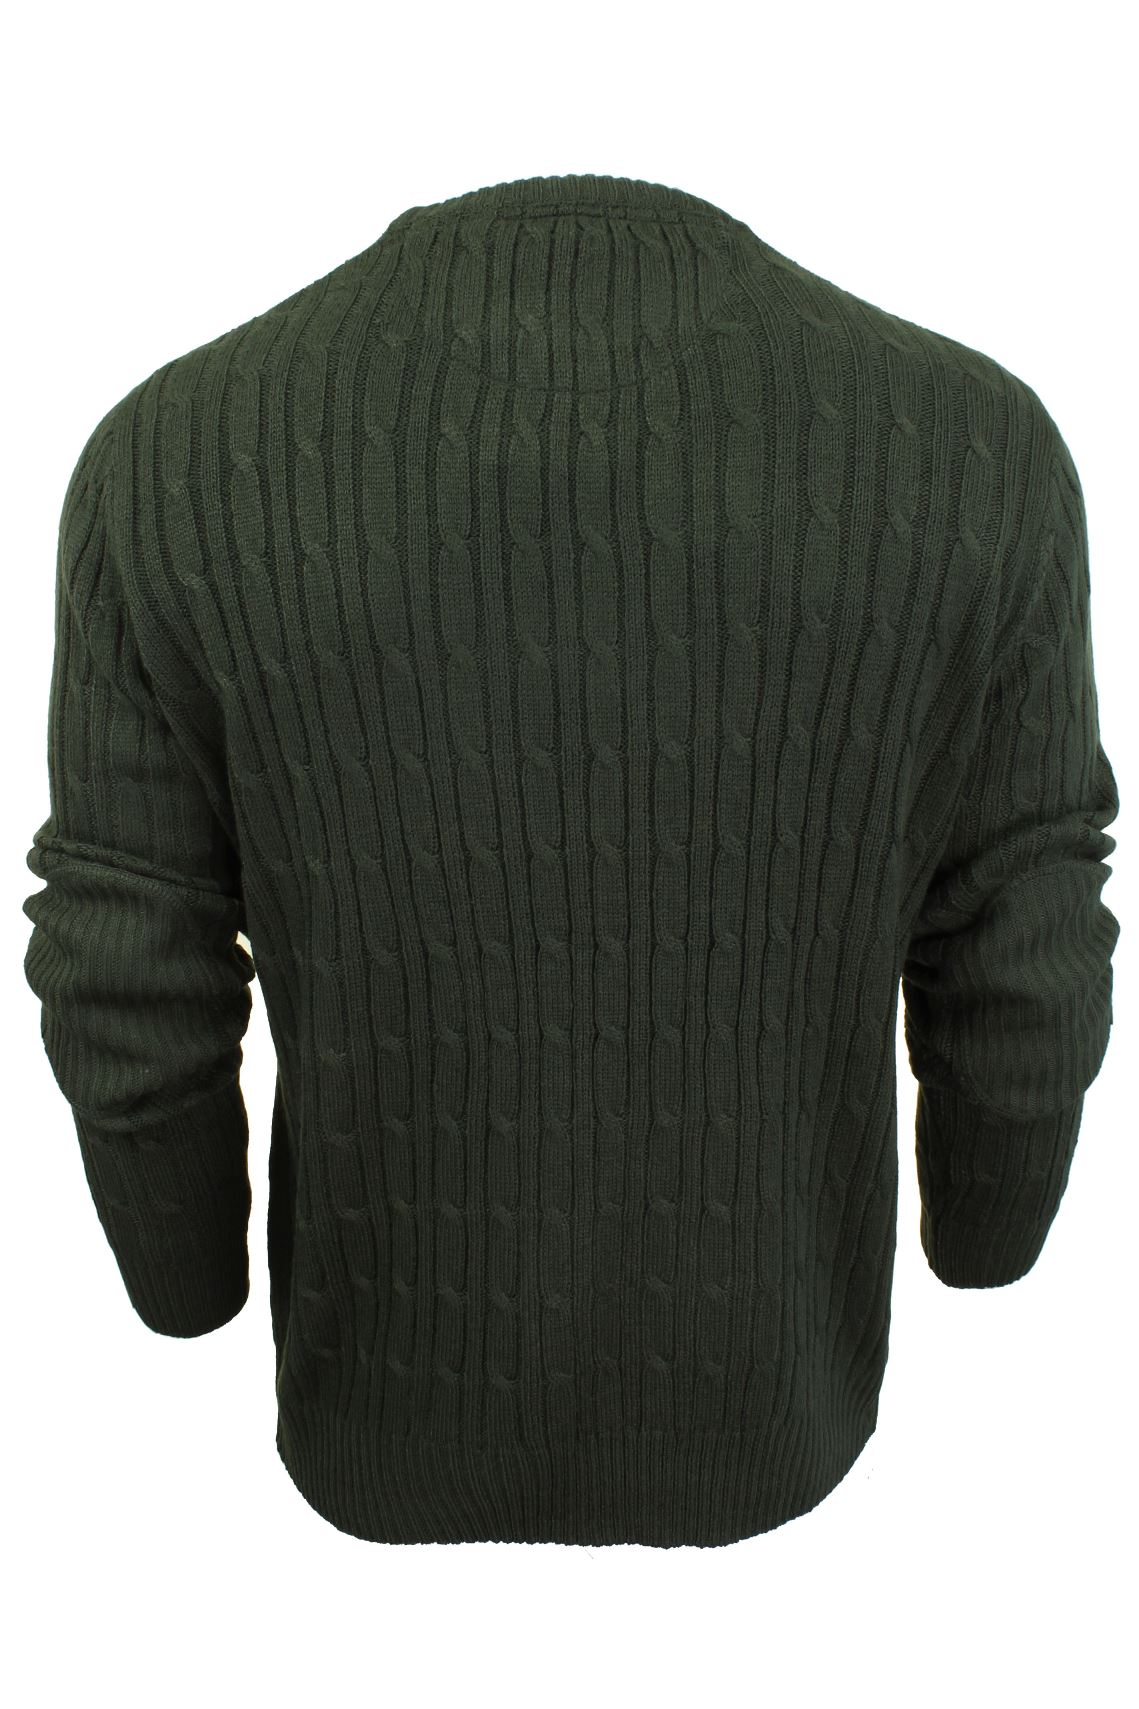 Mens-Jumper-by-Brave-Soul-039-MAO-039-Cable-Knit-Crew-Neck thumbnail 5